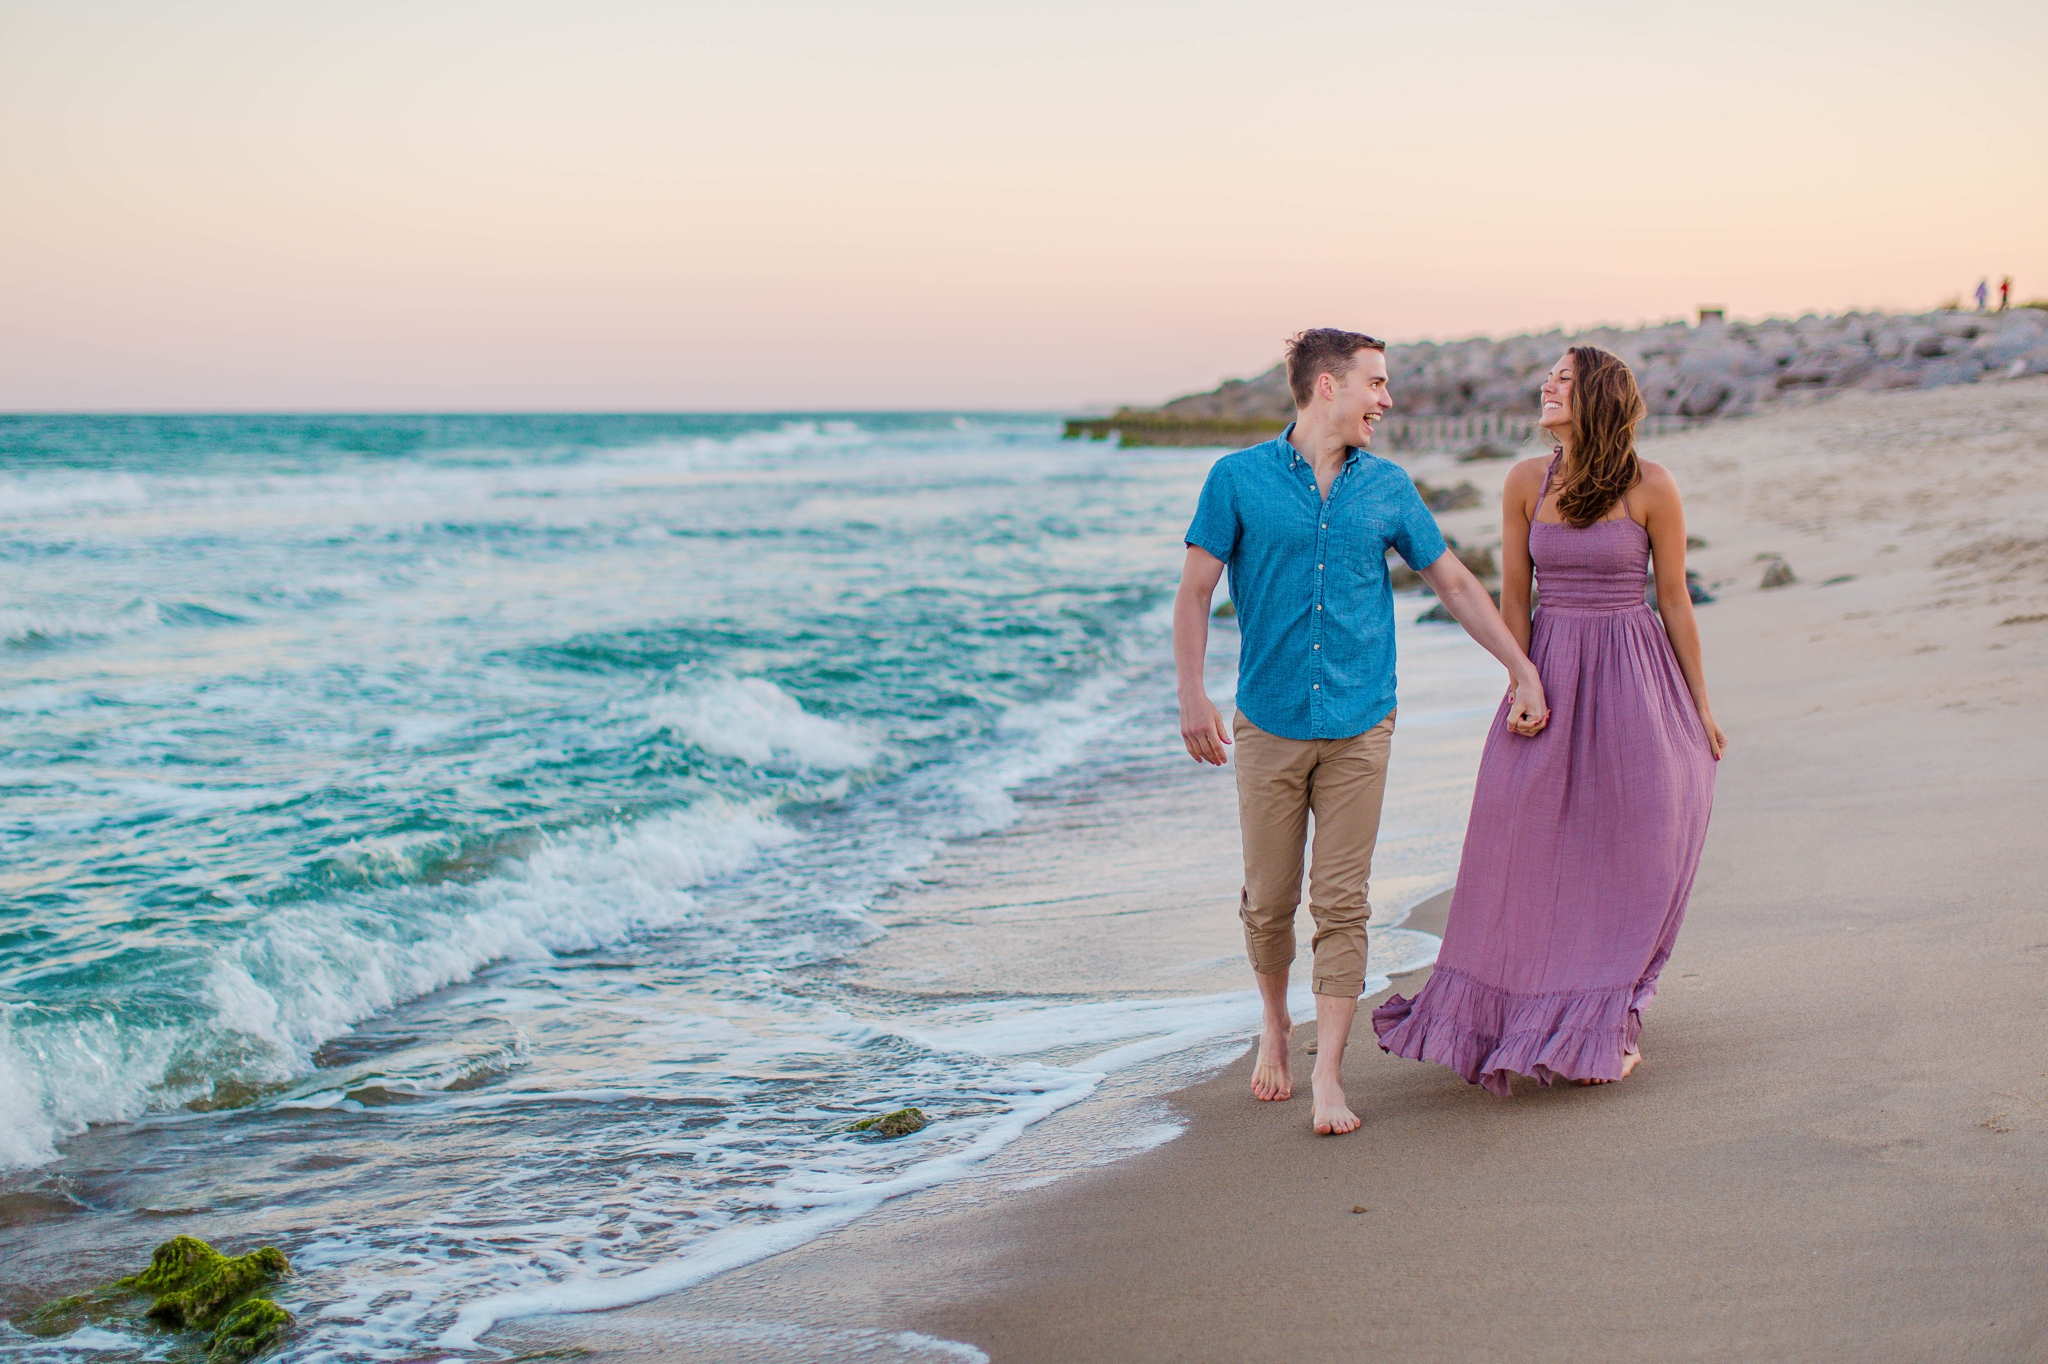 GUY AND his fiance walking in the water - - Woman is in a flowy pastel maxi dress - candid and unposed golden light session - beach engagement photographer in honolulu, oahu, hawaii - johanna dye photography